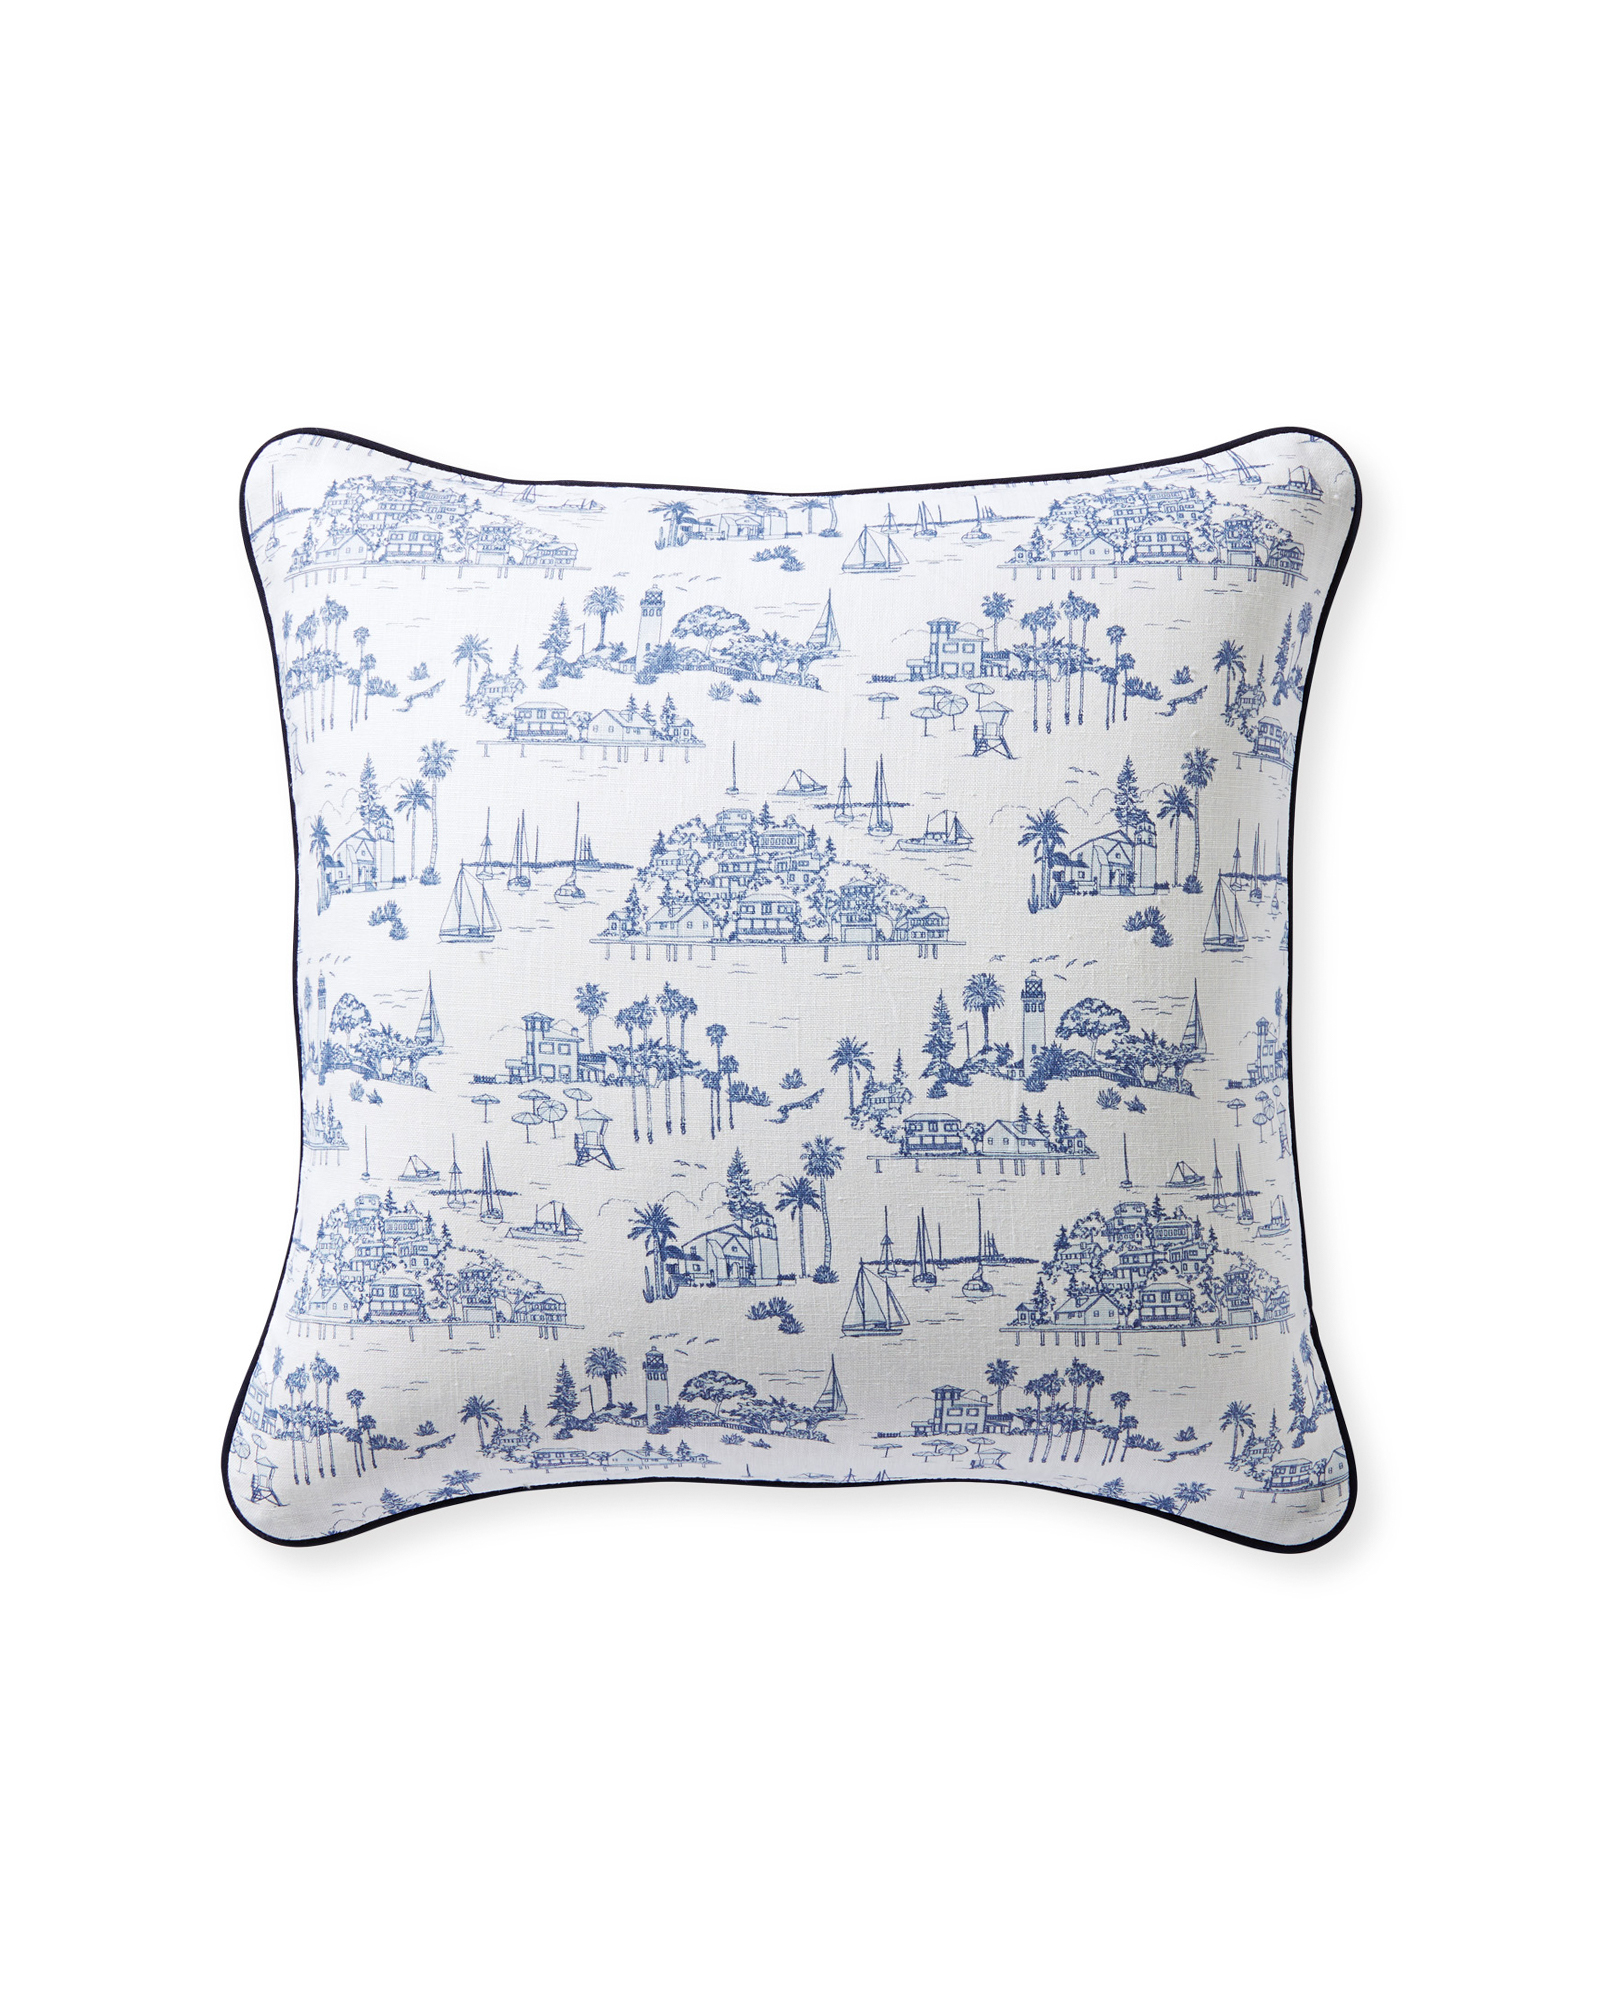 Seahaven Pillow Cover,